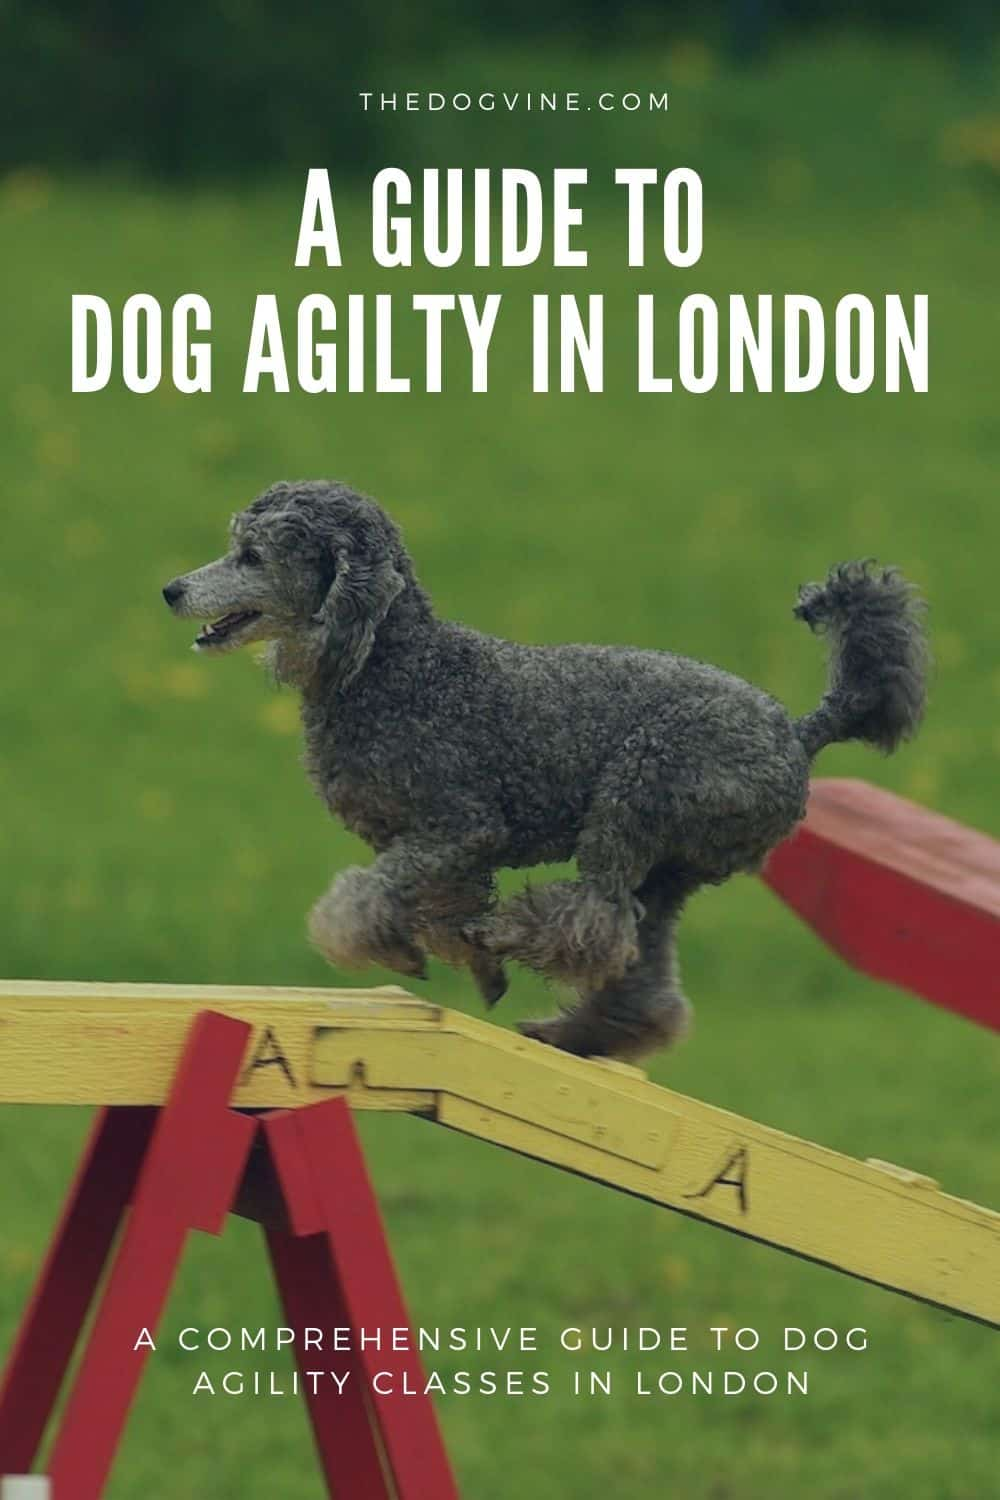 Dog Agility In London - Dog Agility Classes in London Guide